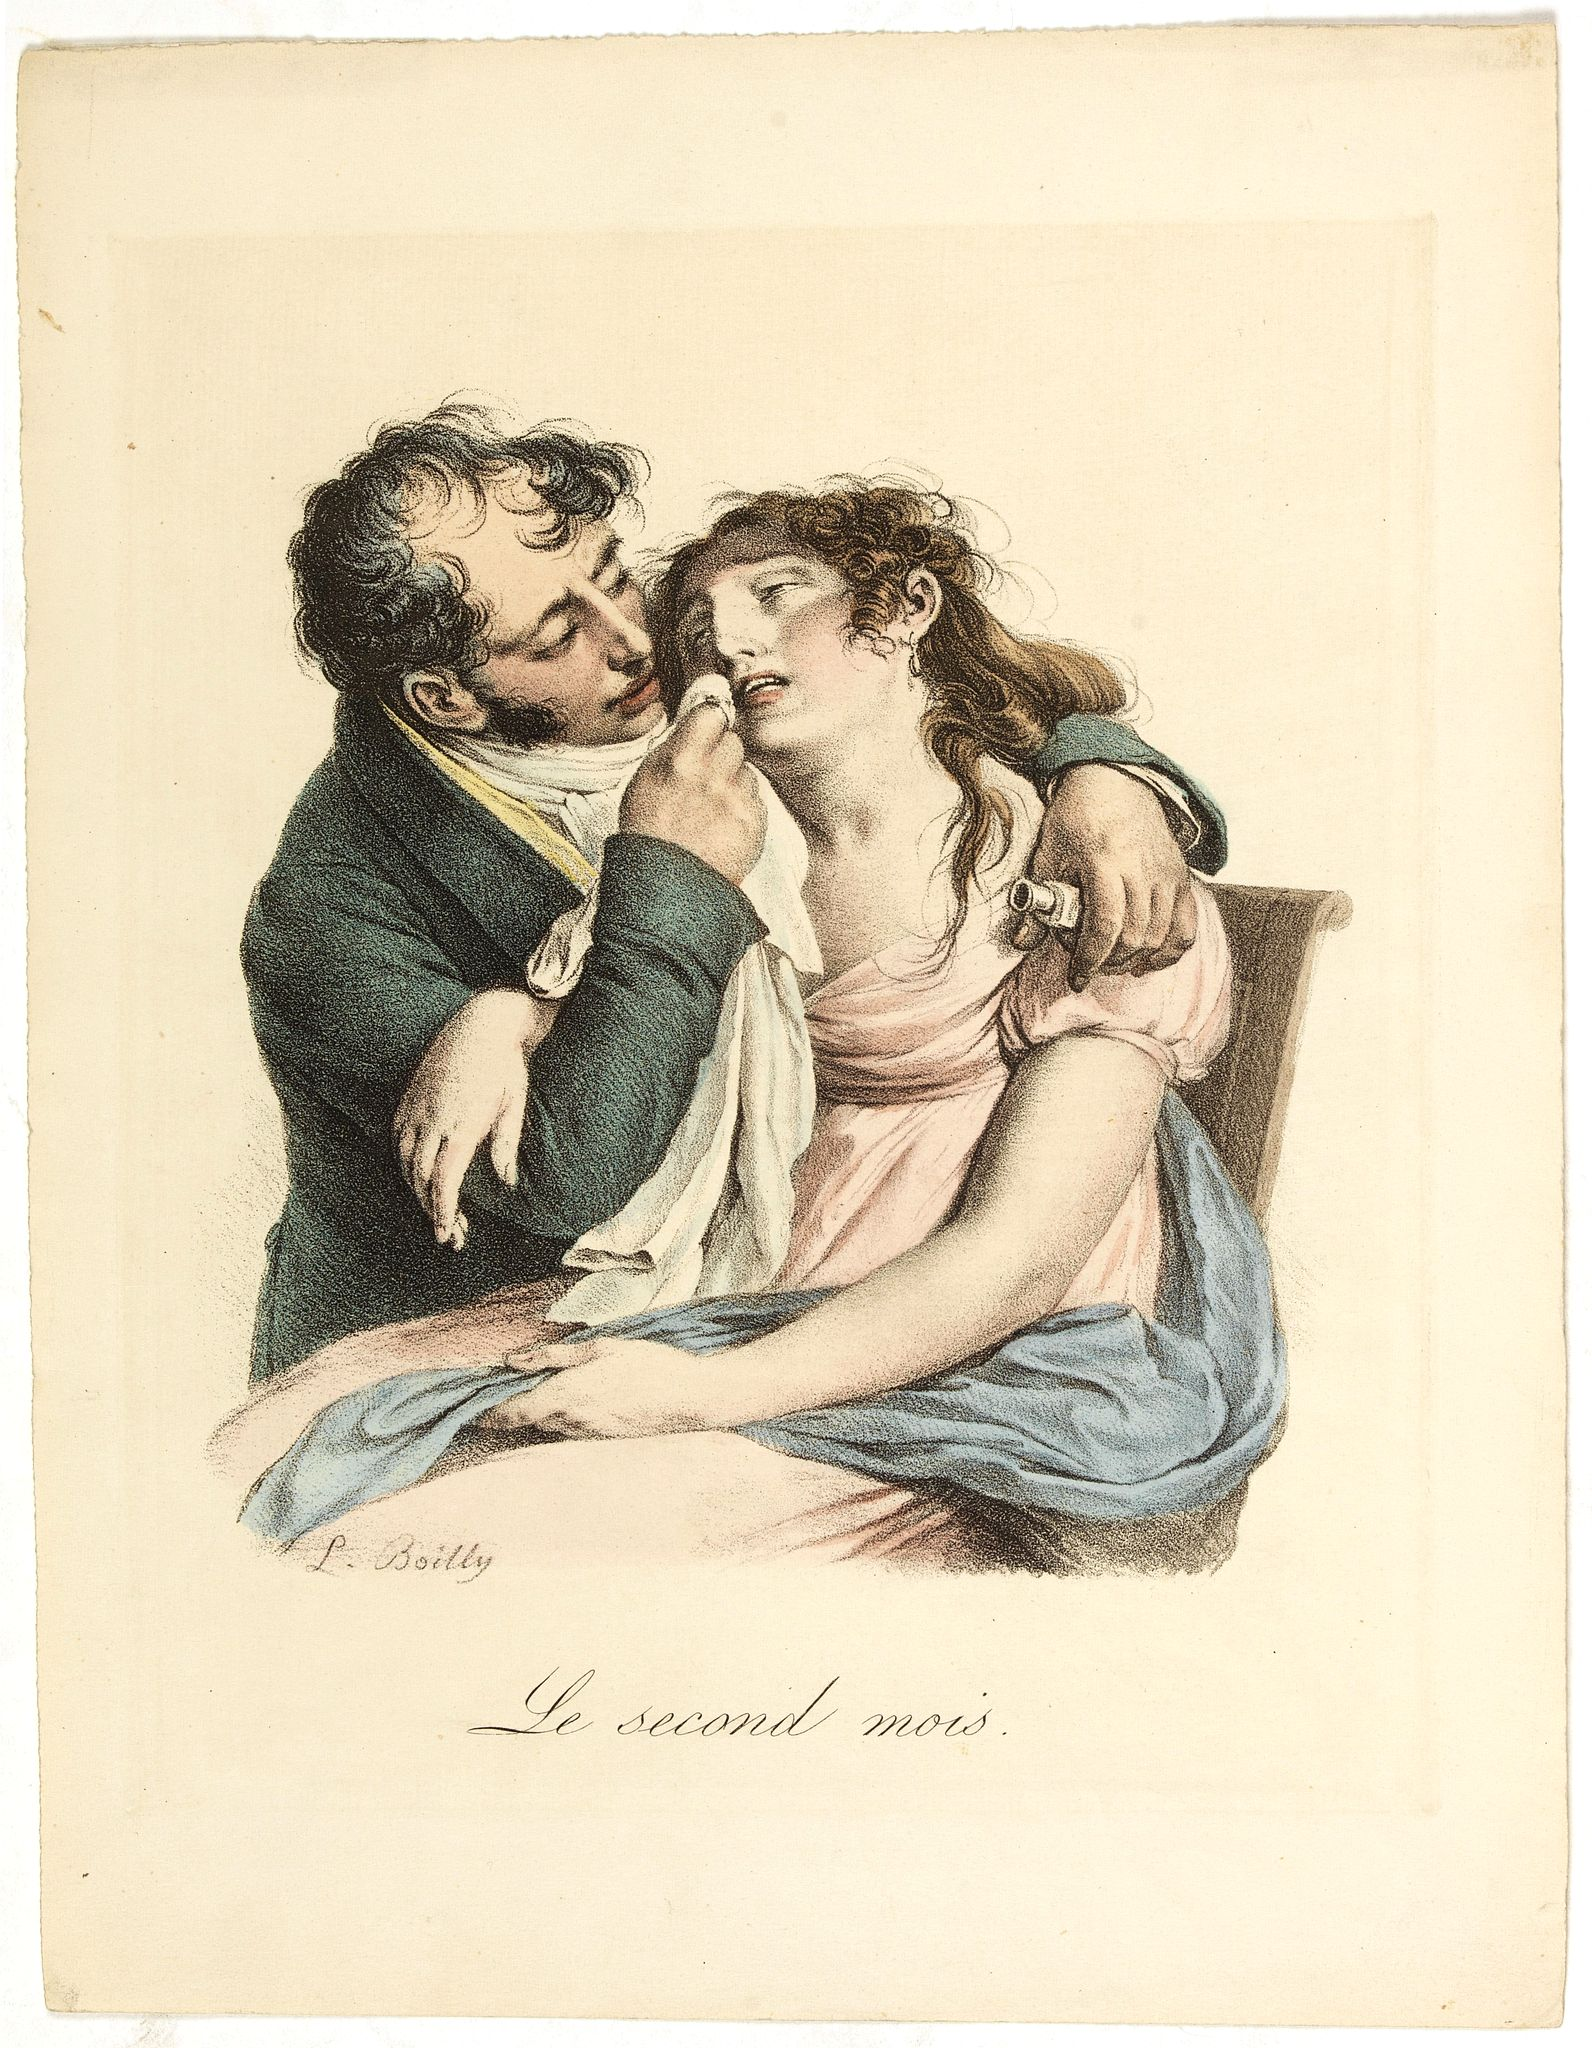 BOILLY, L. -  Le Second Mois. (The second month).